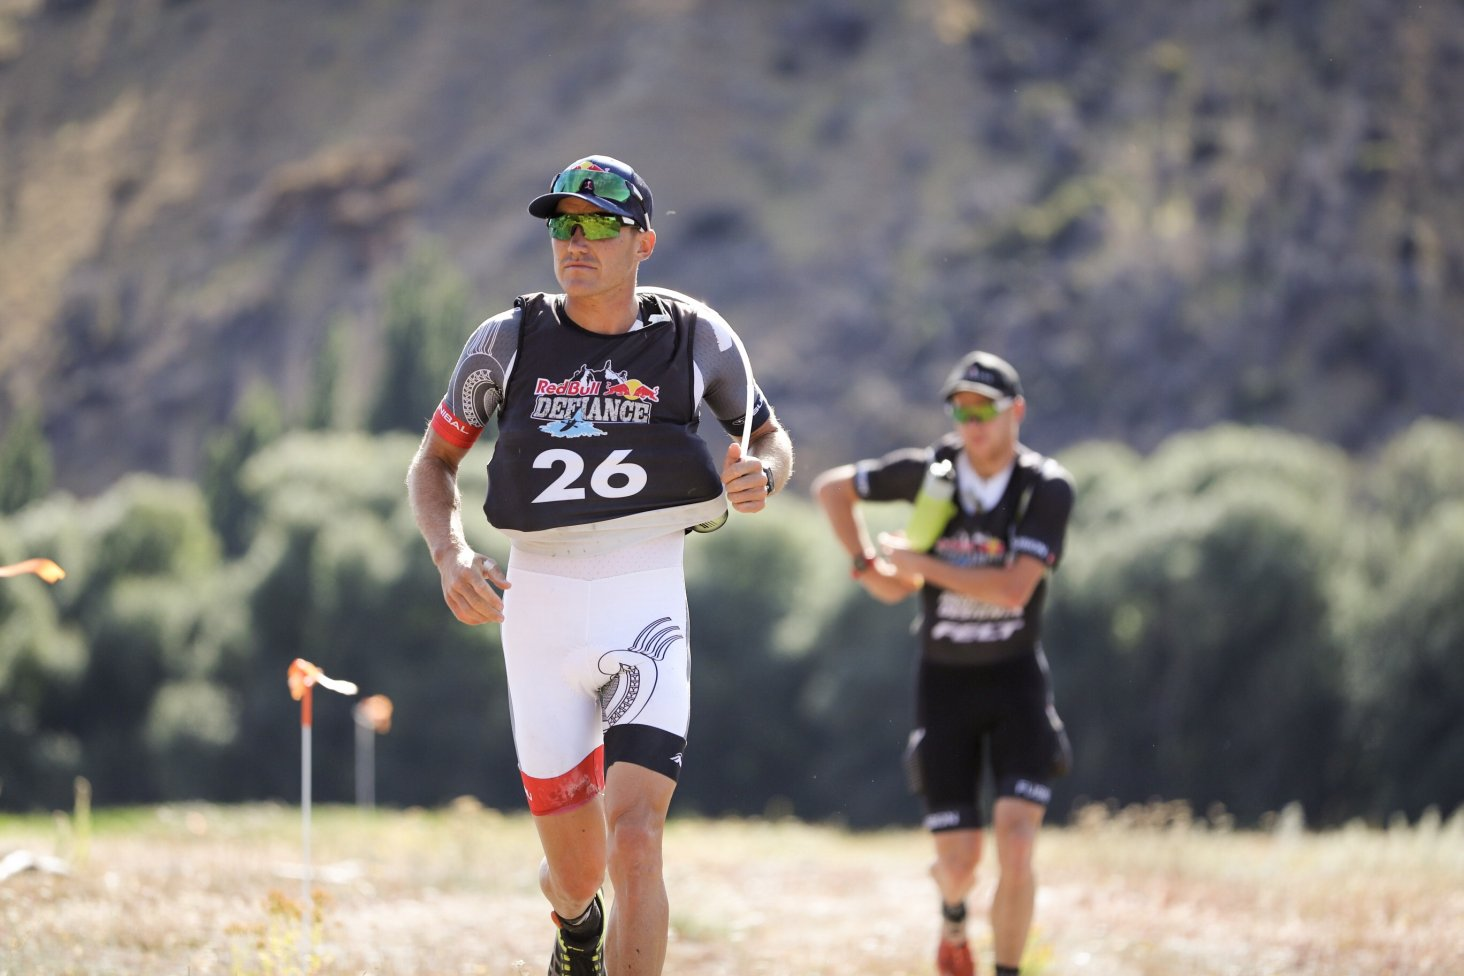 Subaru Brand Ambassador Braden Currie (front) runs through part of the Red Bull Defiance course in Wanaka this weekend, with team mate Dougal Allan. PHOTO: GRAEME MURRAY.